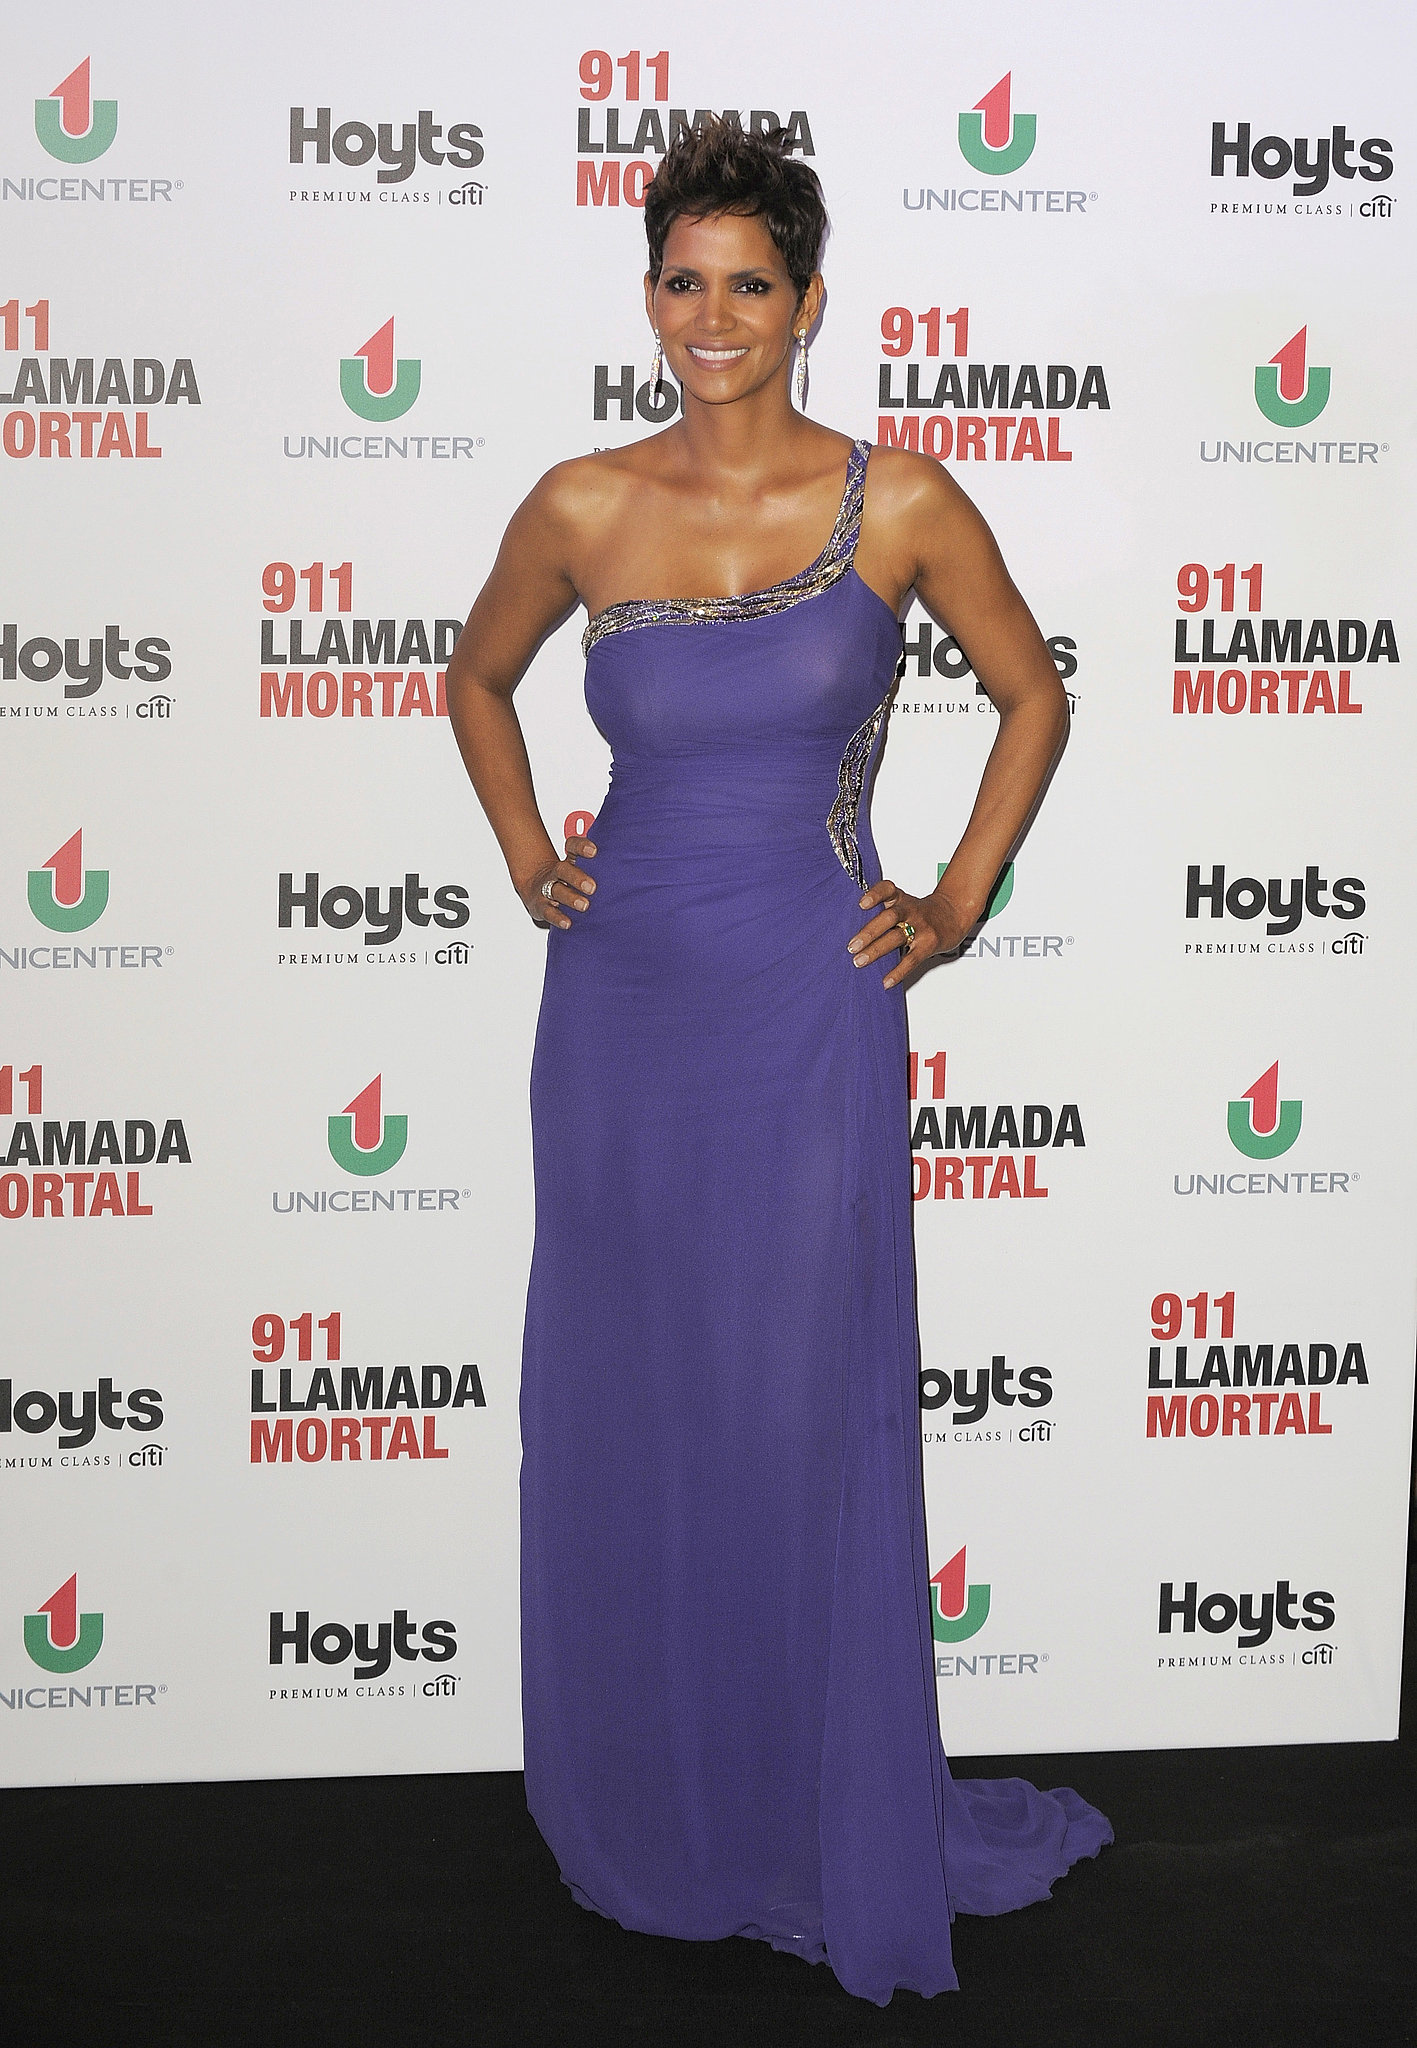 Promoting The Call, Halle looked red carpet fabulous in a perfectly fitting purple gow